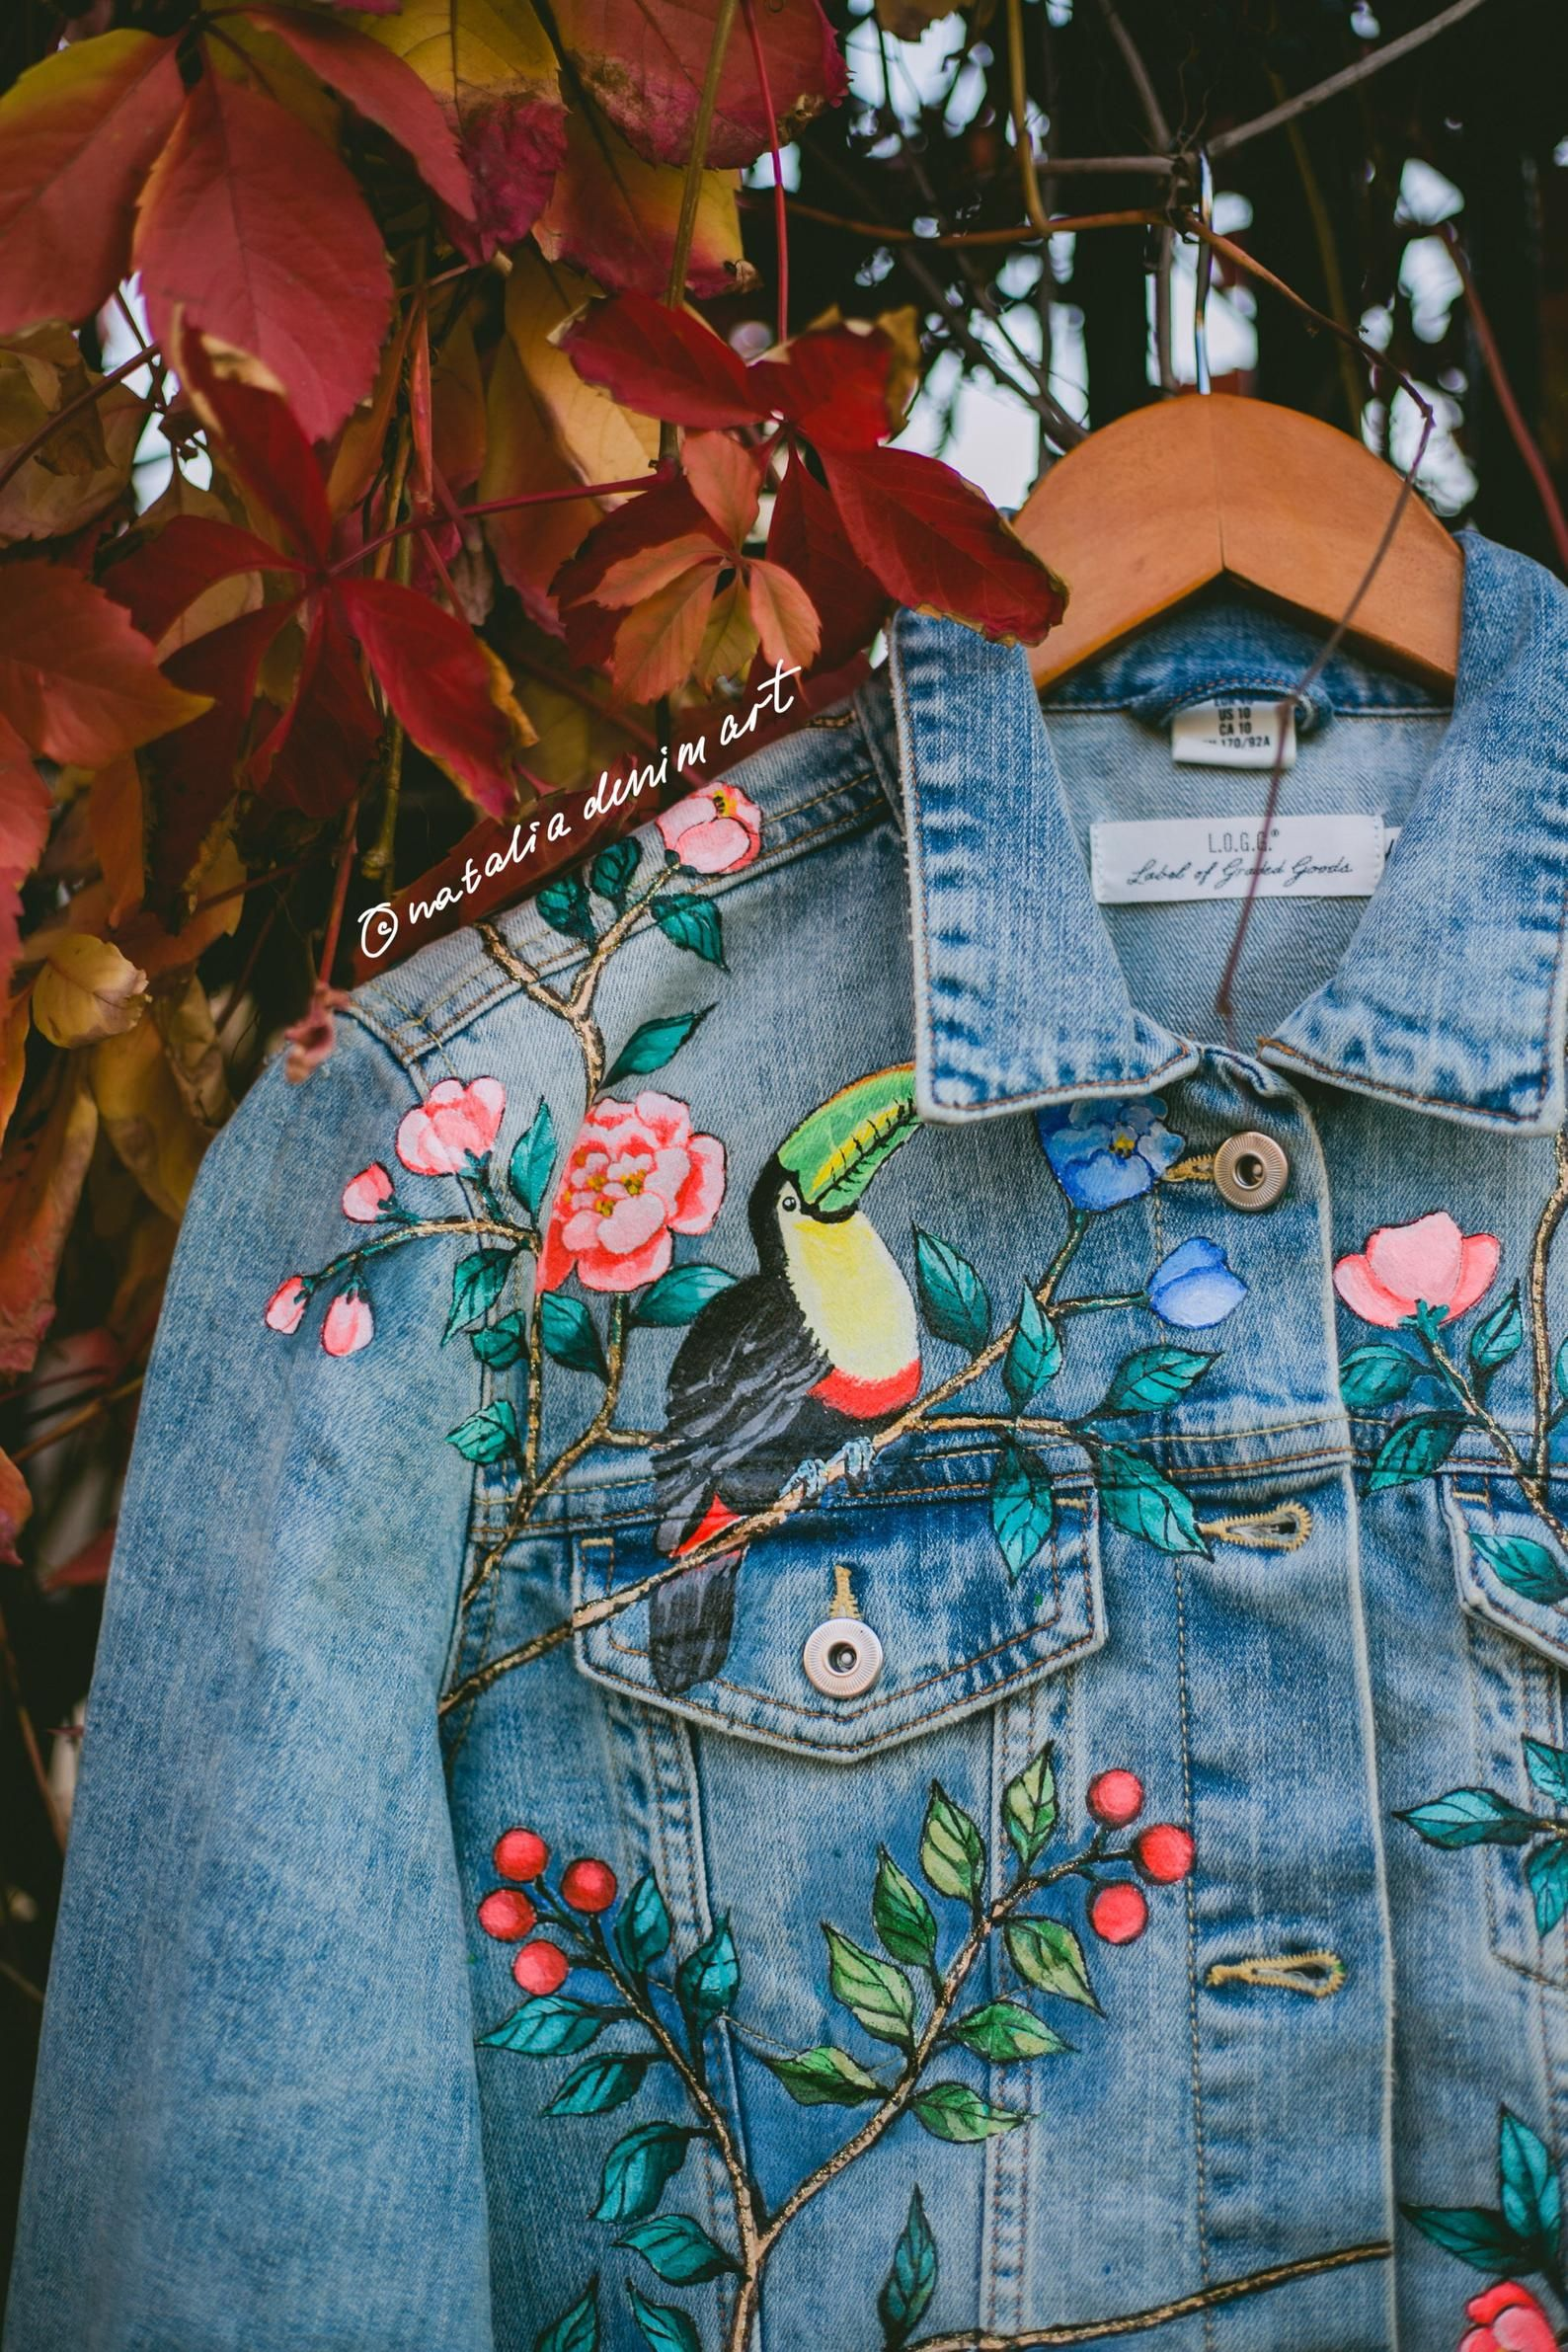 Customized Hand Painted Jean Jacket With Bird Rose Animals Etsy In 2020 Painted Jeans Painted Denim Hand Painted Denim Jacket [ 2382 x 1588 Pixel ]